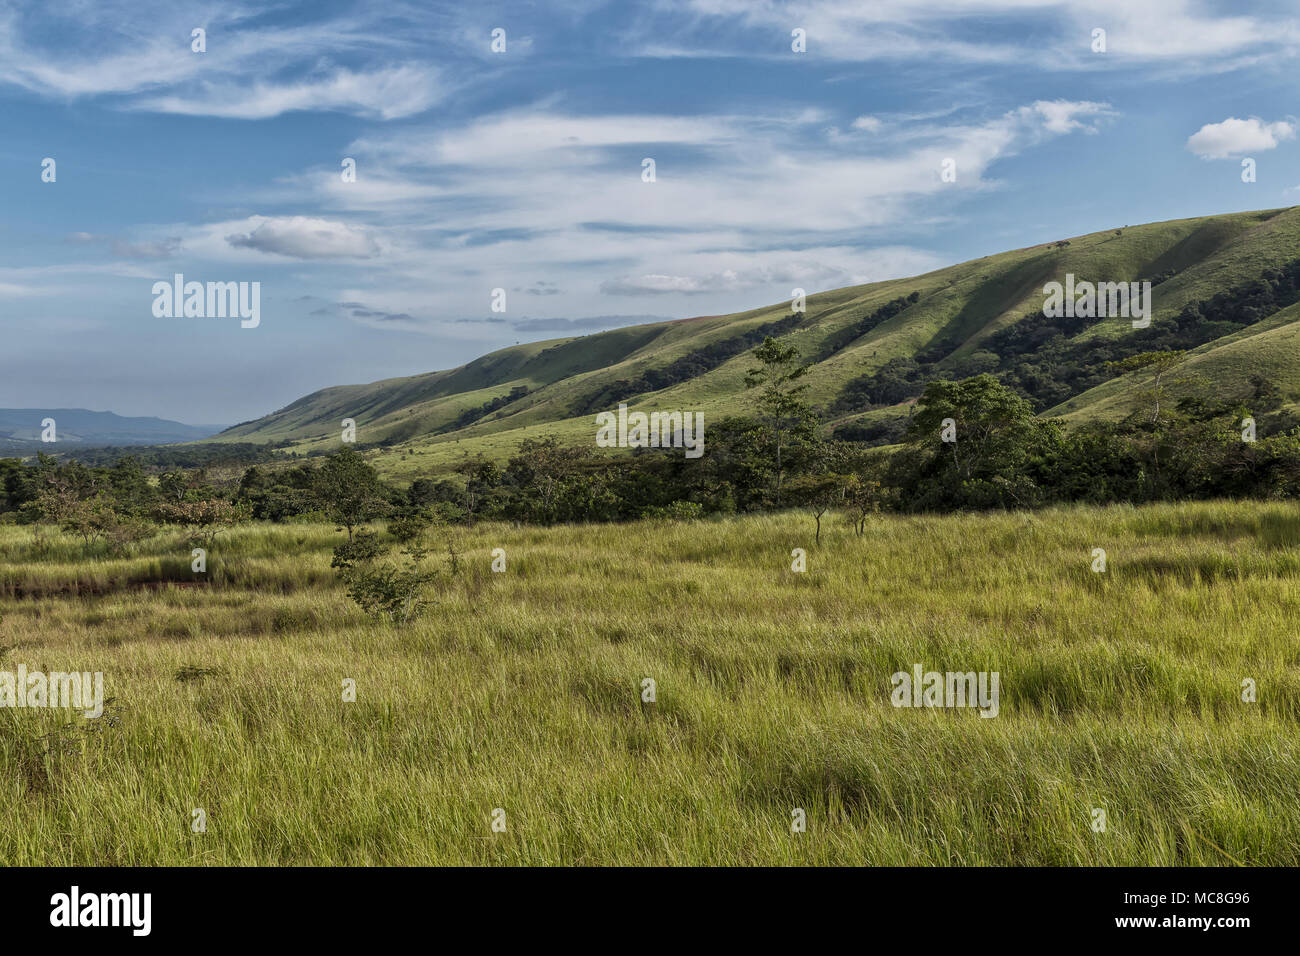 Green valley in malanje, Angola. Africa. - Stock Image